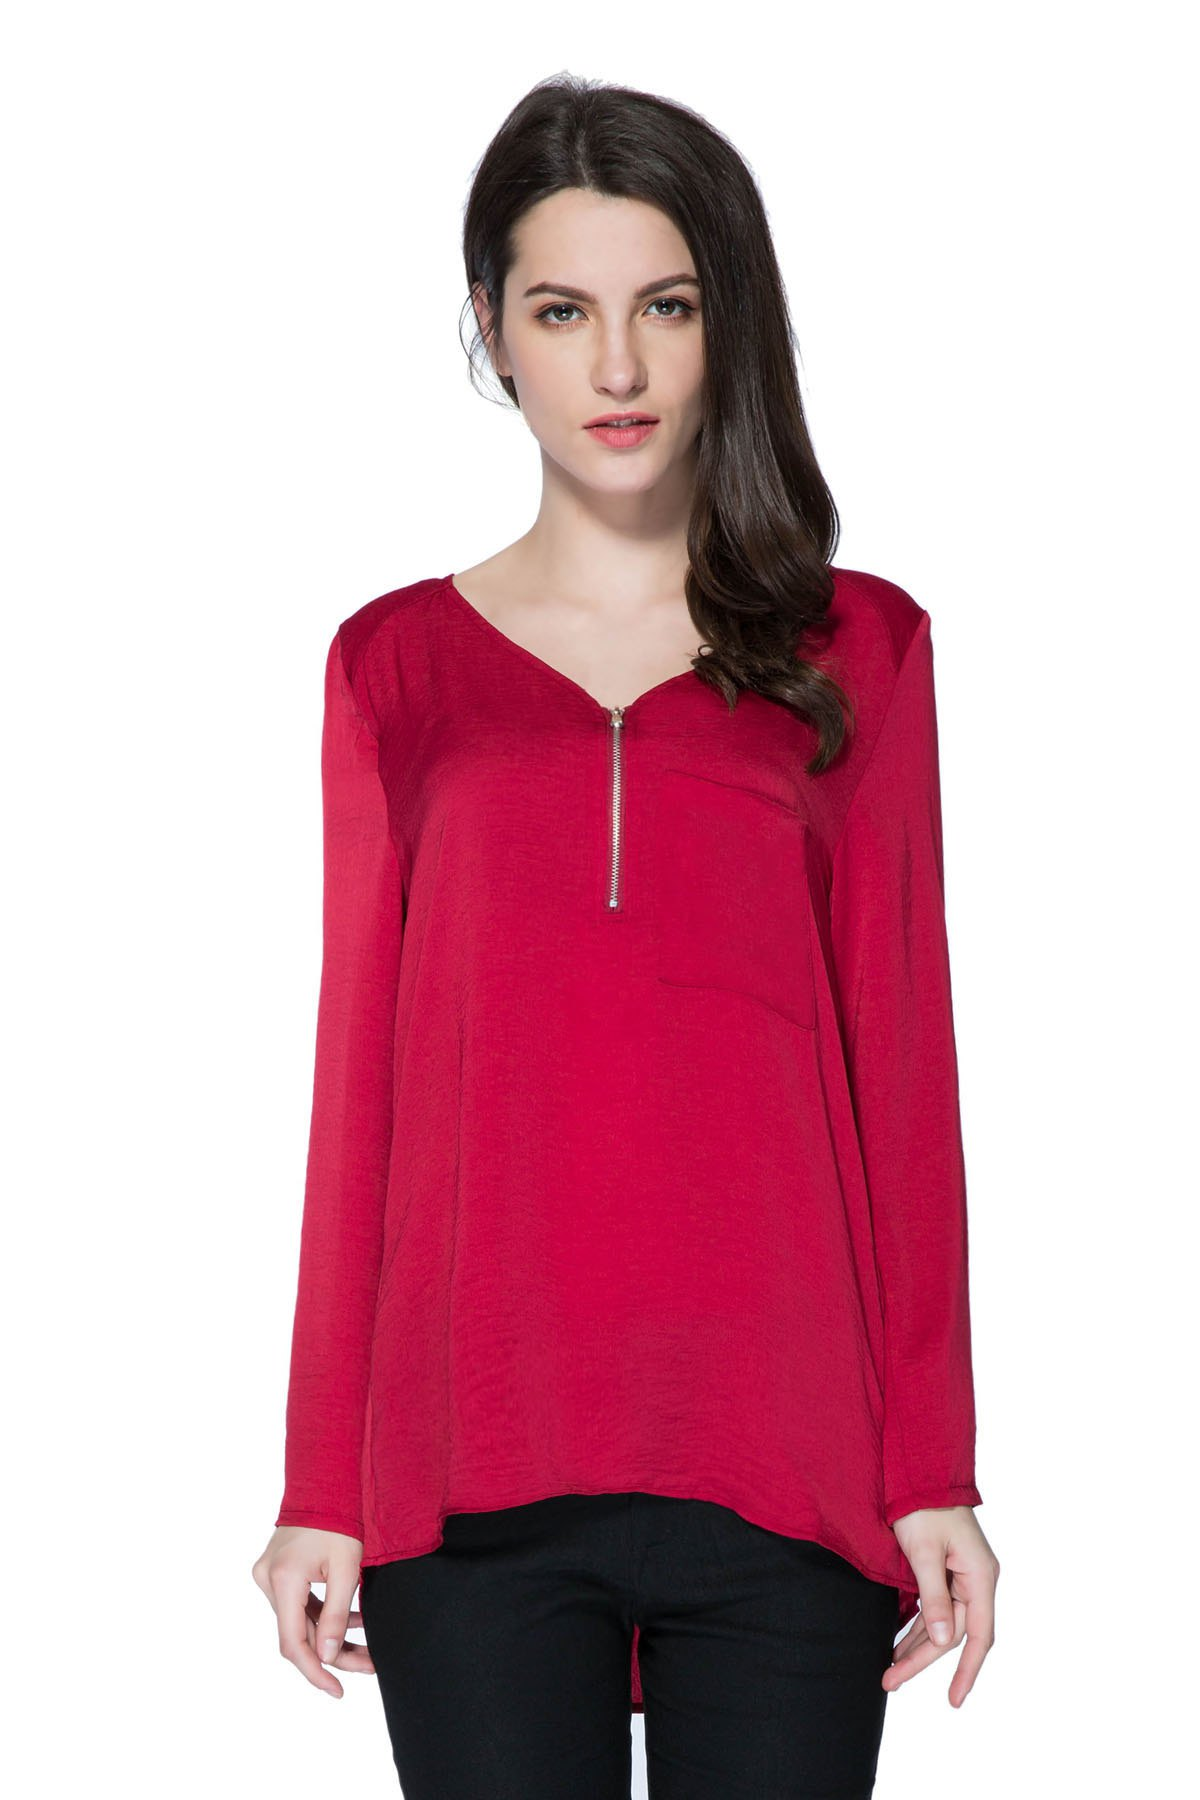 Solid Color V-Neck Zipper Blouse - WINE RED S